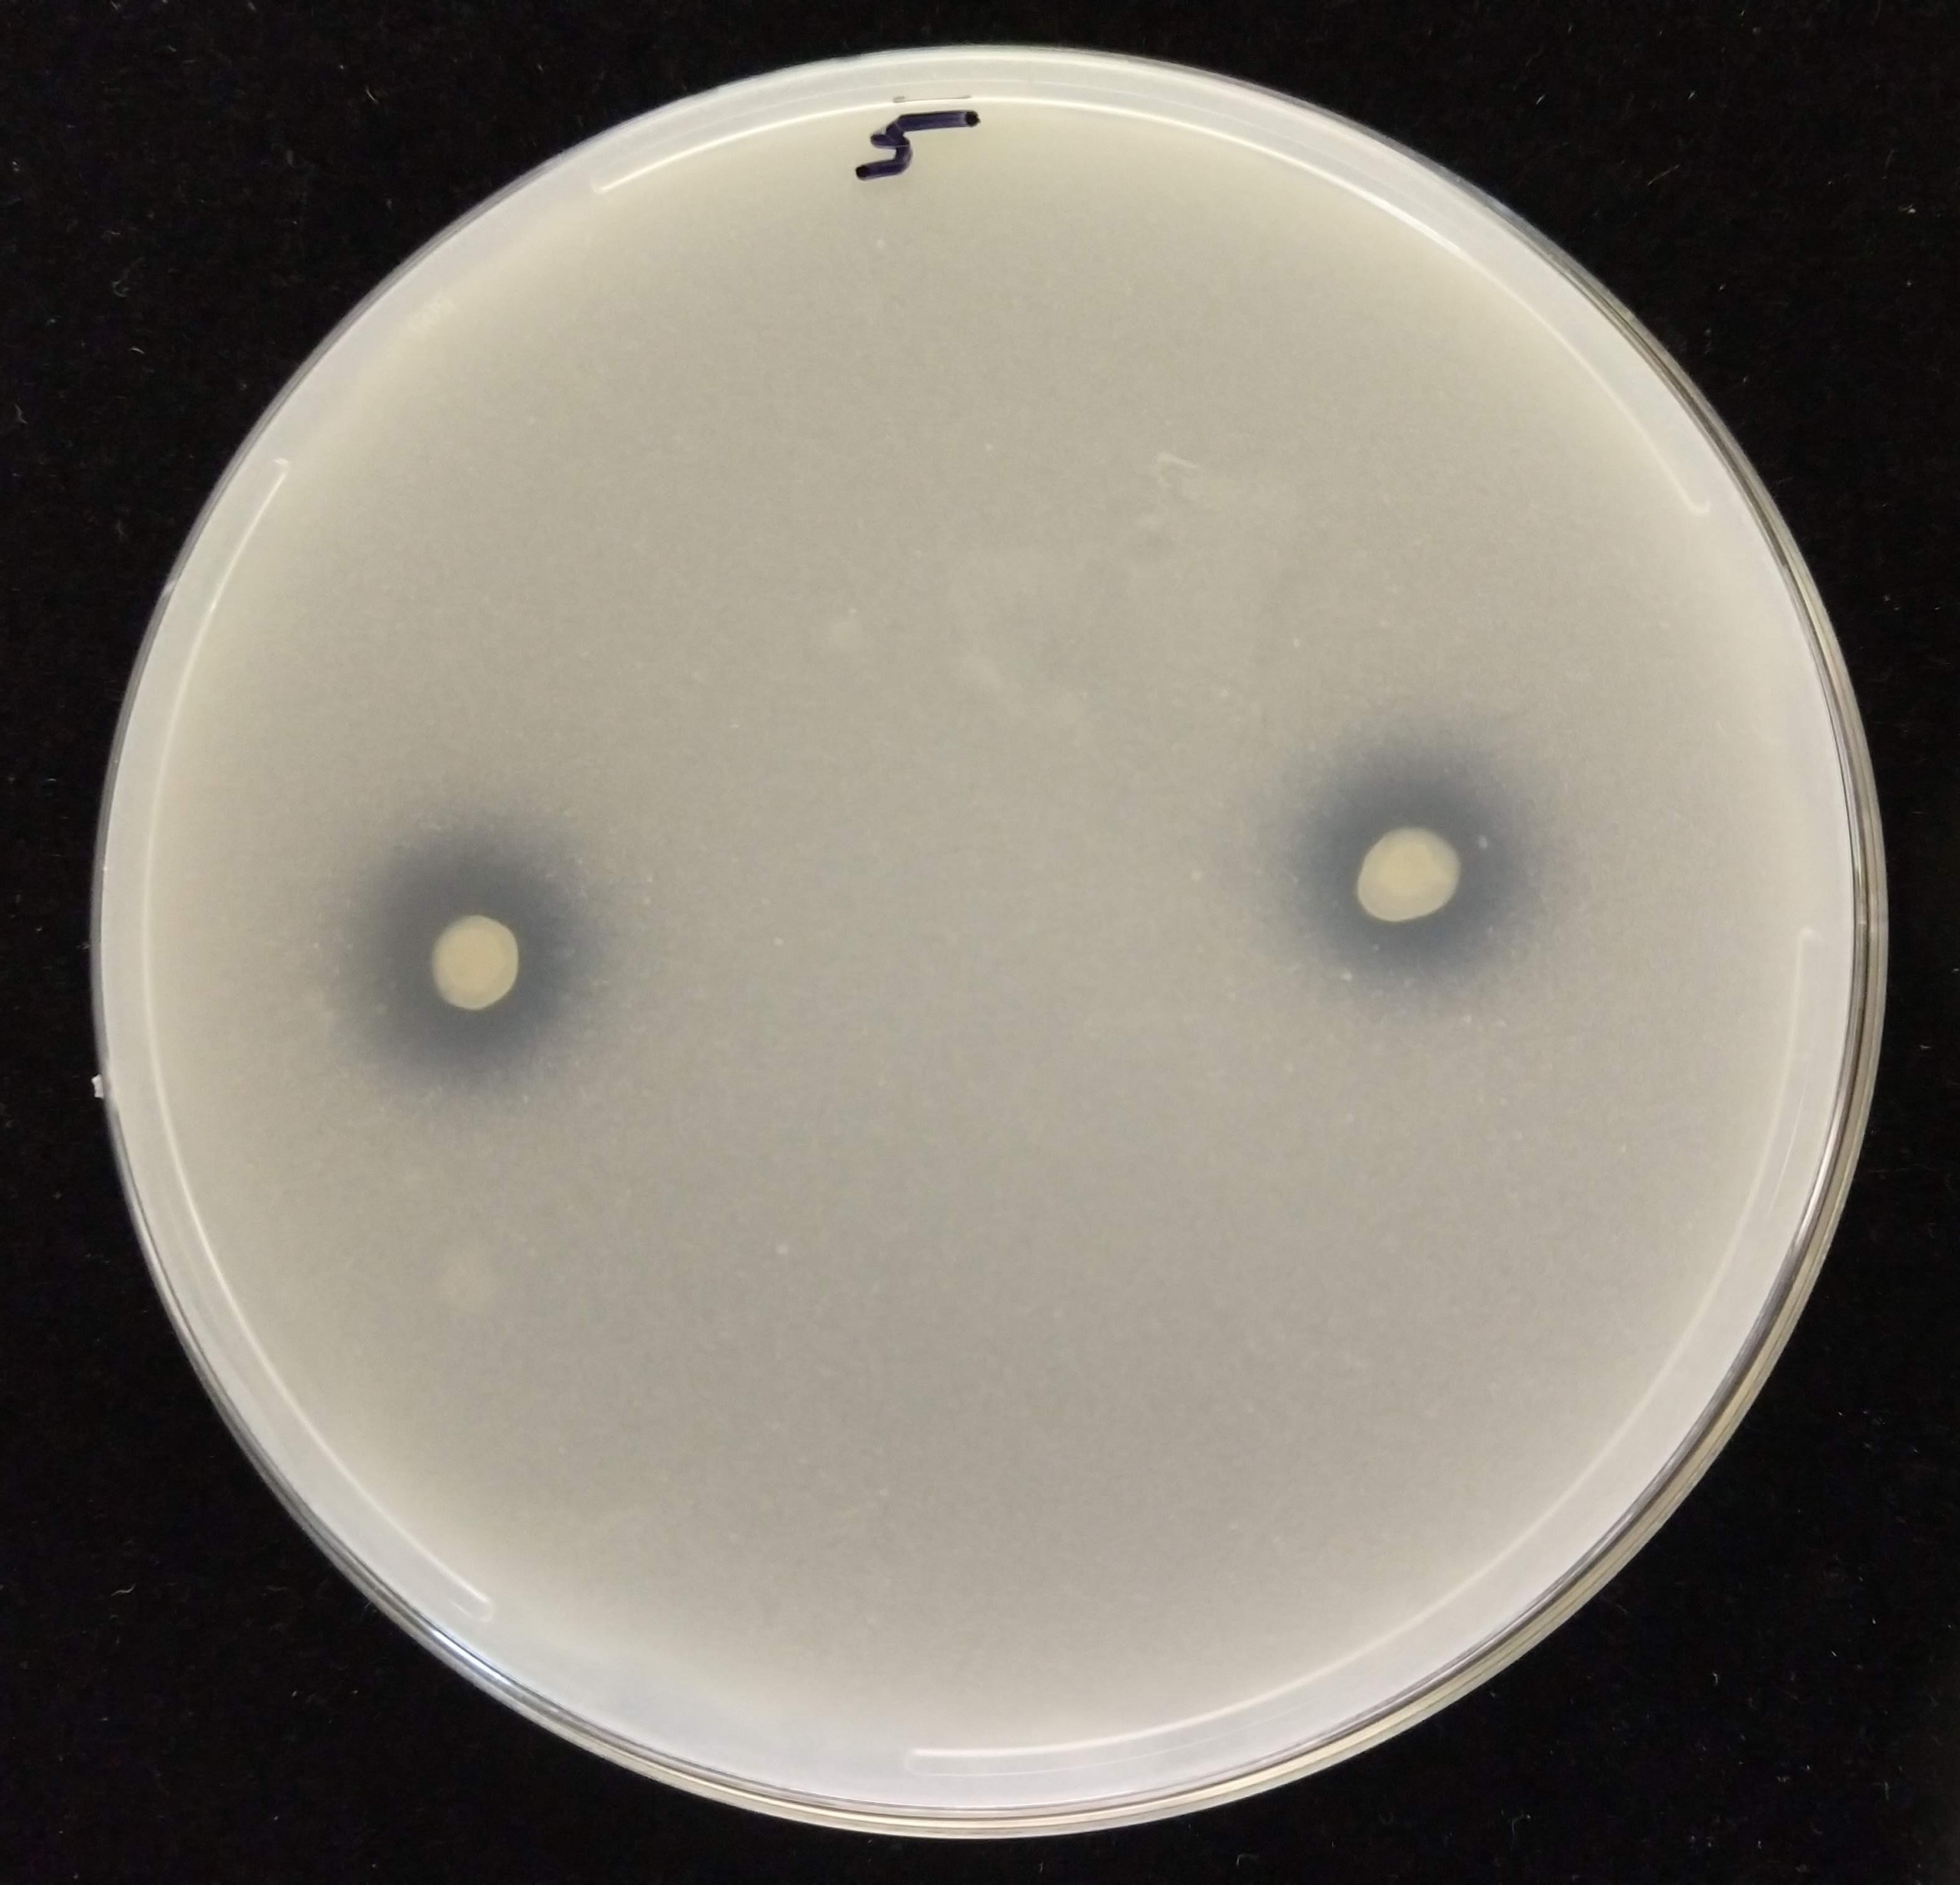 As an endophytic strain dissolves tricalcium phosphate, a clear halo is produced around the milky-white phosphate circles, as seen in this image of the process occurring in an agar medium.